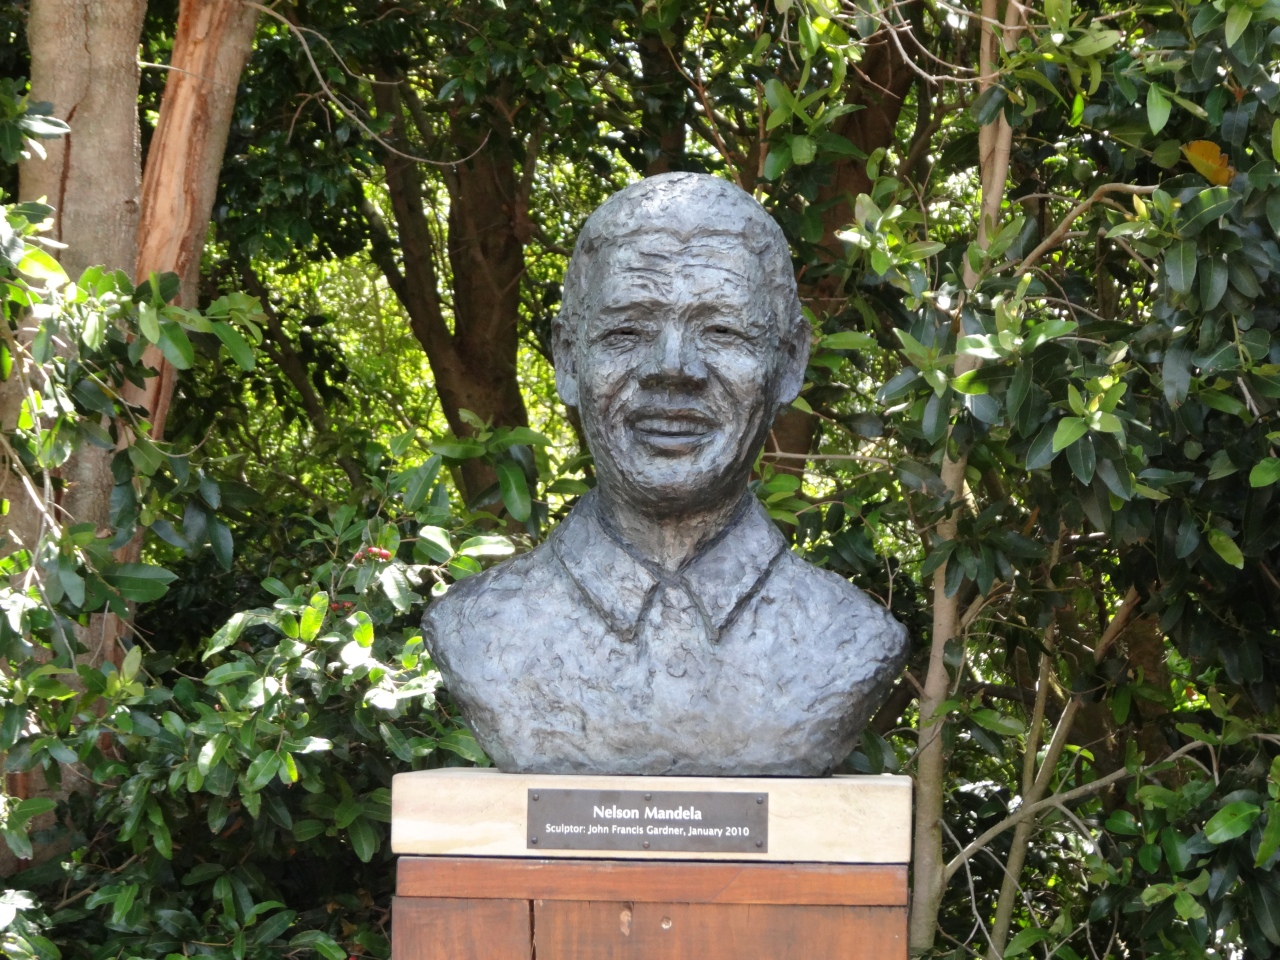 Remembering nelson mandela and south africa jardin for Jardin nelson mandela